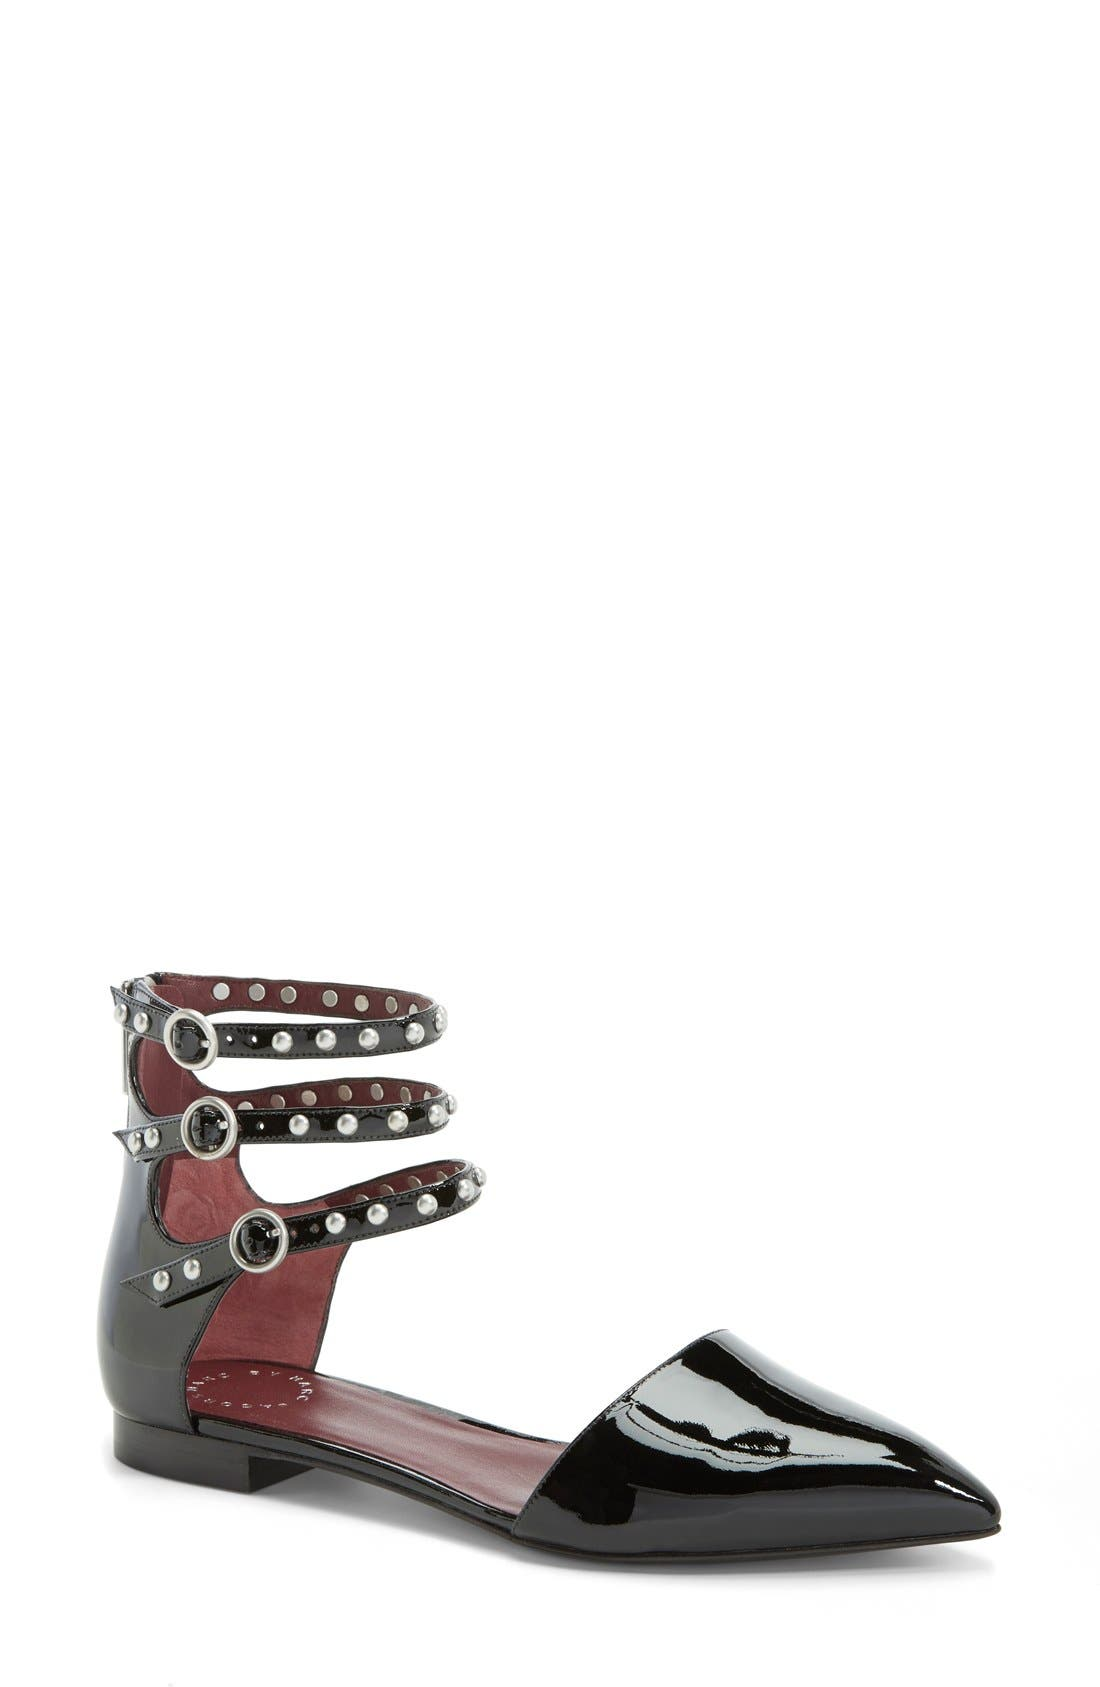 Alternate Image 1 Selected - MARC BY MARC JACOBS 'Minetta' Ankle Strap Flat (Women)